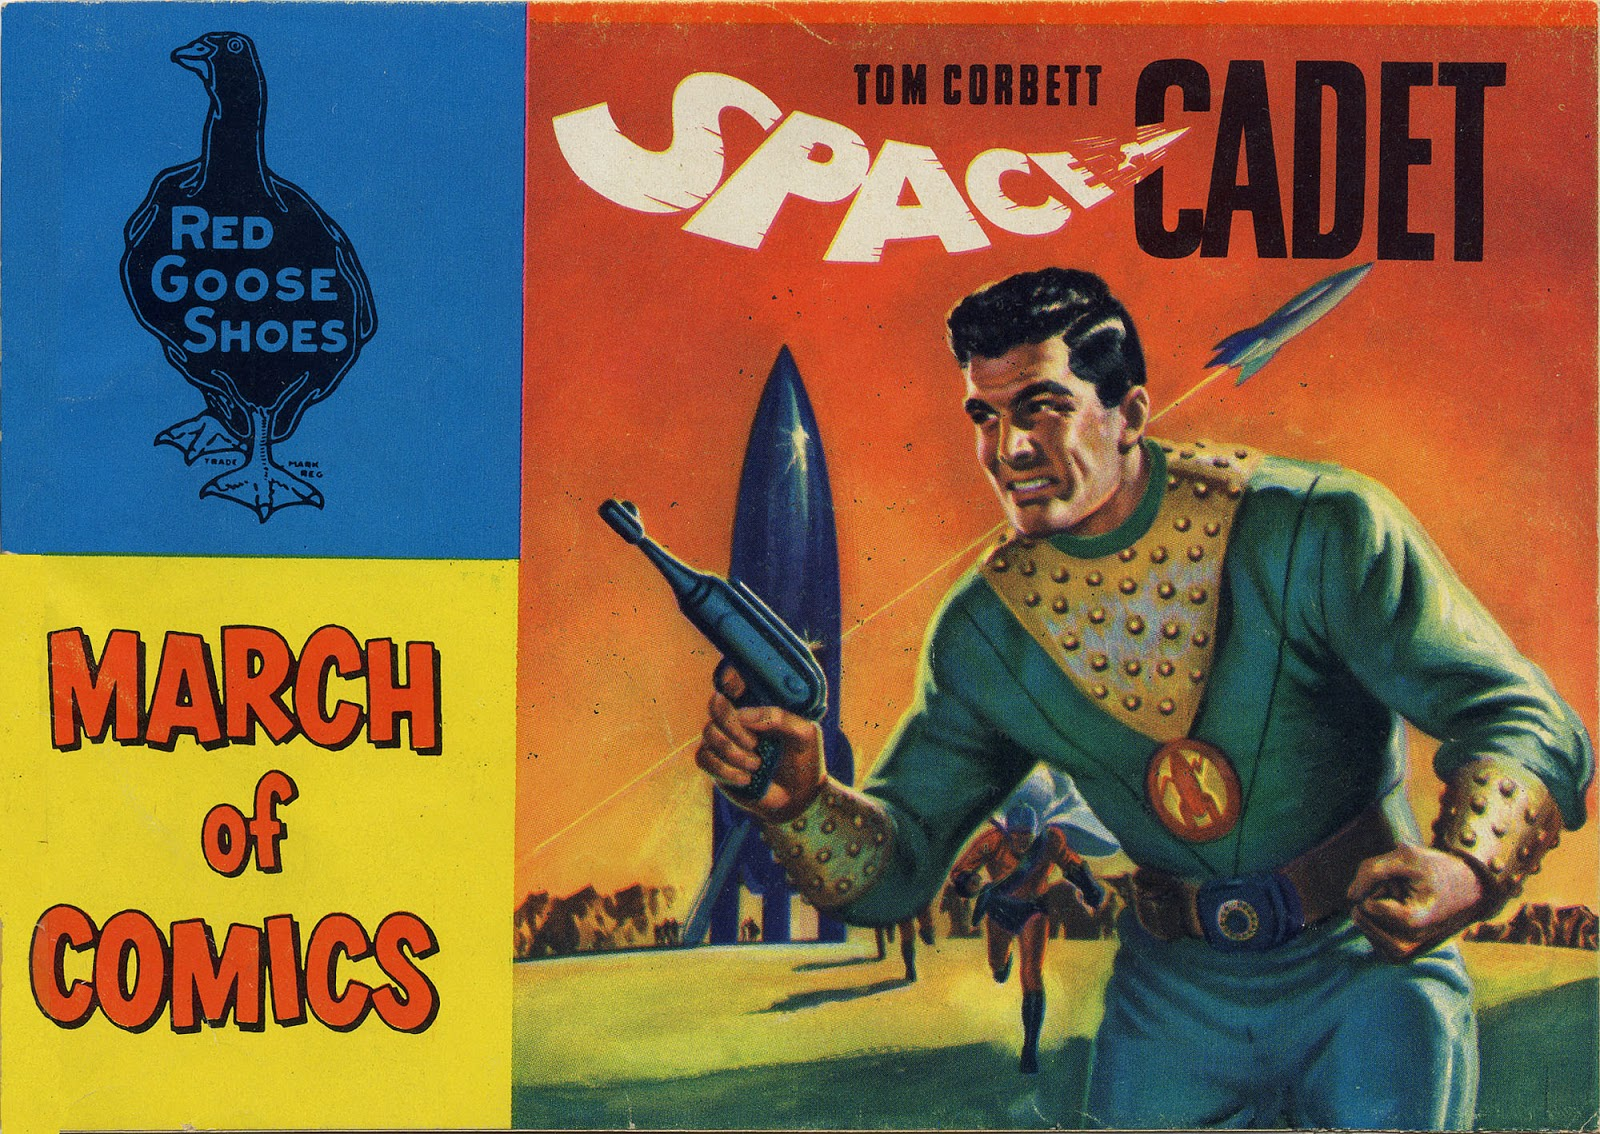 March of Comics 102 - Tom Corbett Space Cadet - 01a.jpg